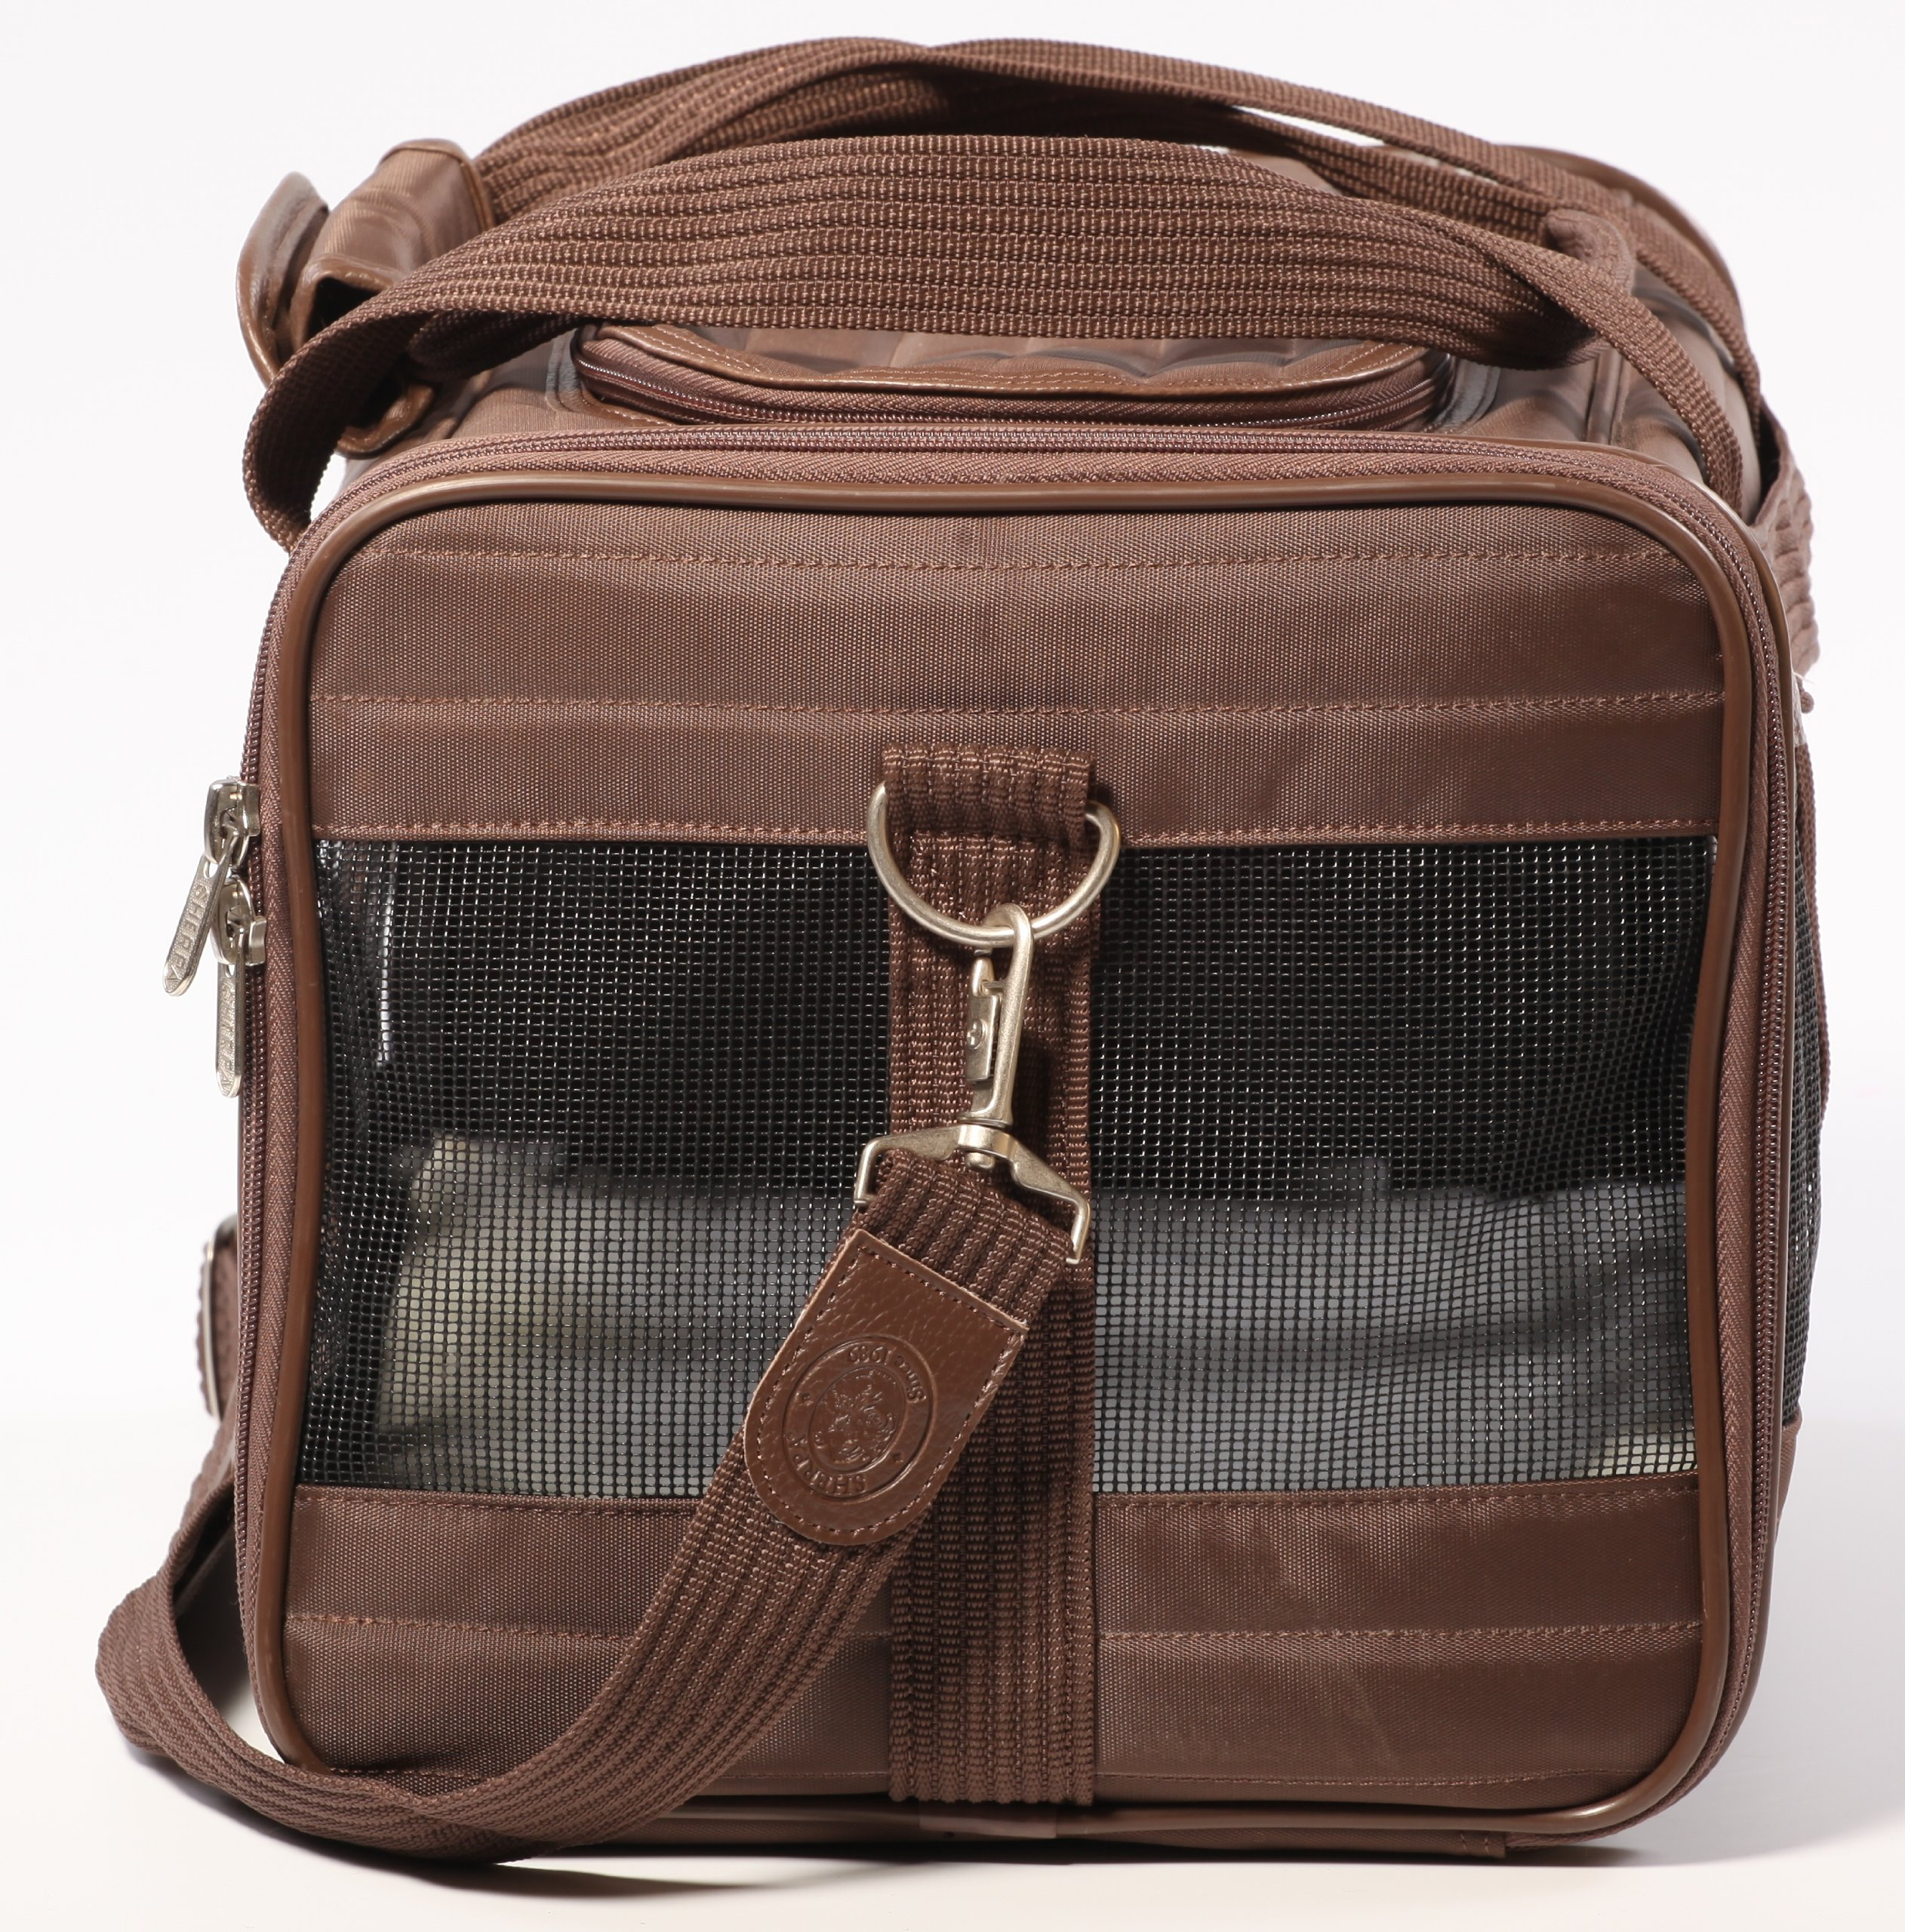 Sherpa Travel Original Deluxe Airline Approved Pet Carrier Small, Brown by Sherpa (Image #3)